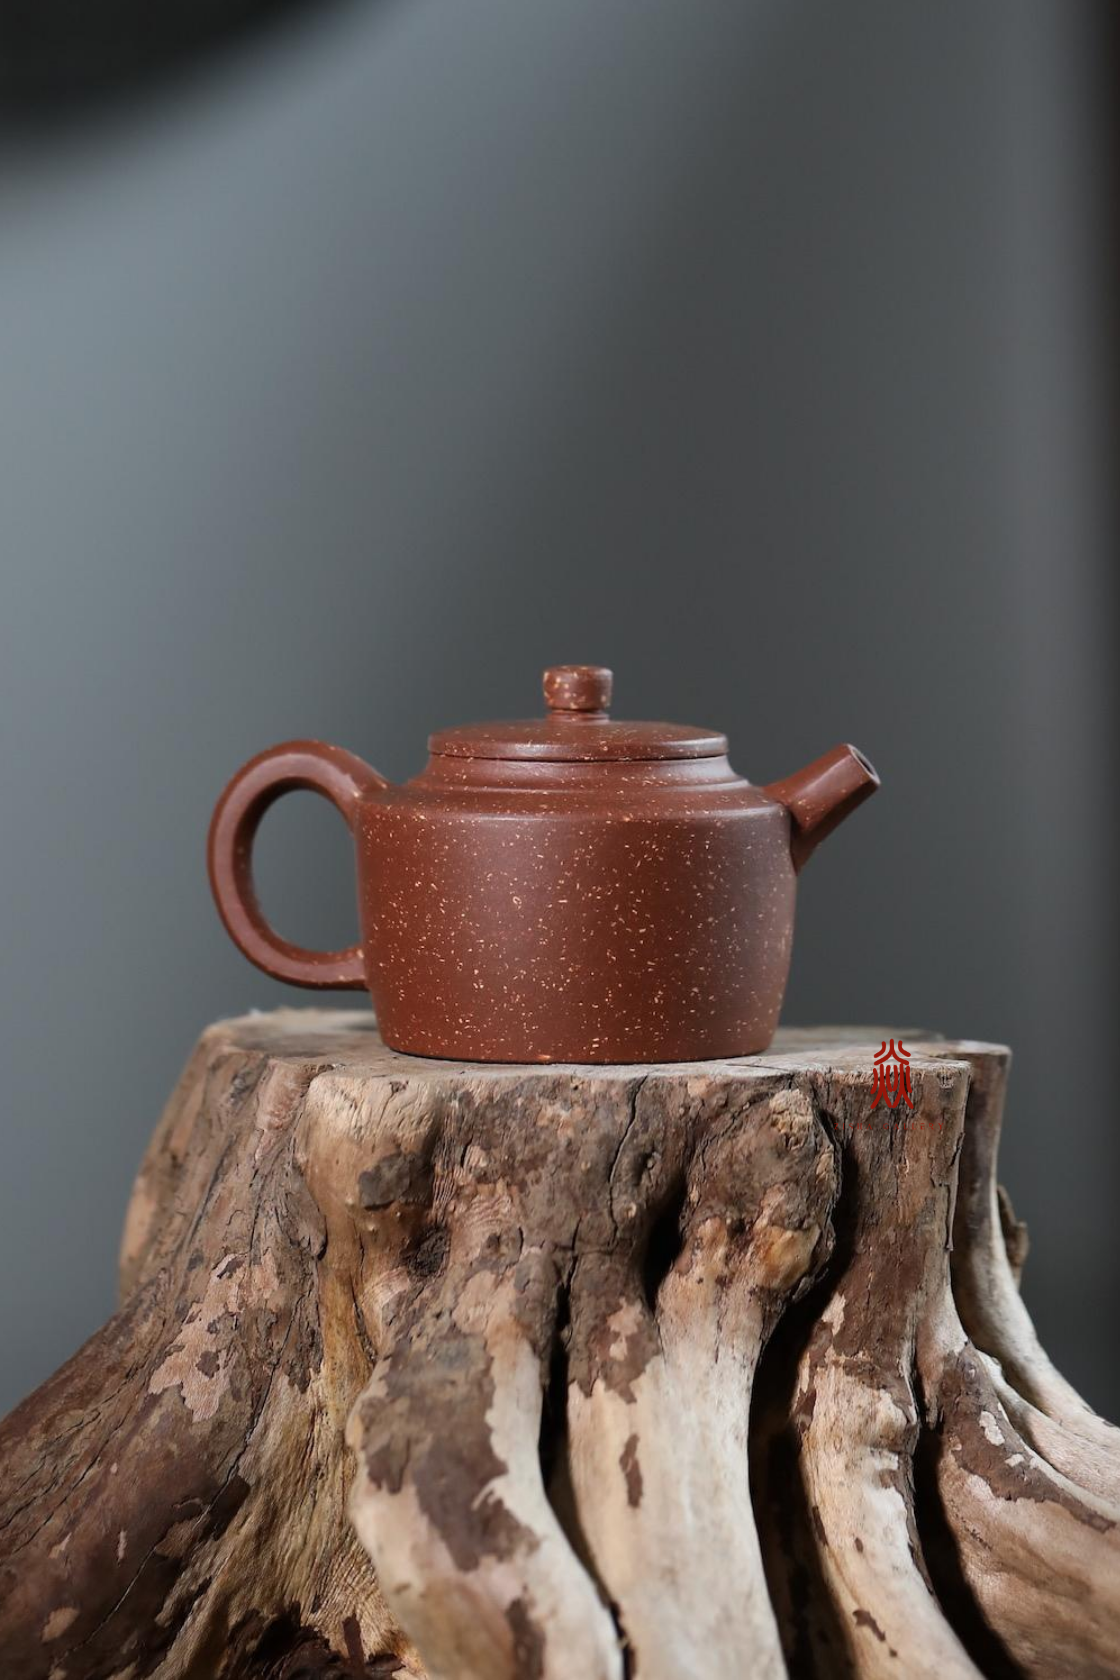 Xiao Mu Tong Hu 小木桶 160ml  紫玉金砂 zini 佘荣飞 - The Phans Yixing Zisha Teapot